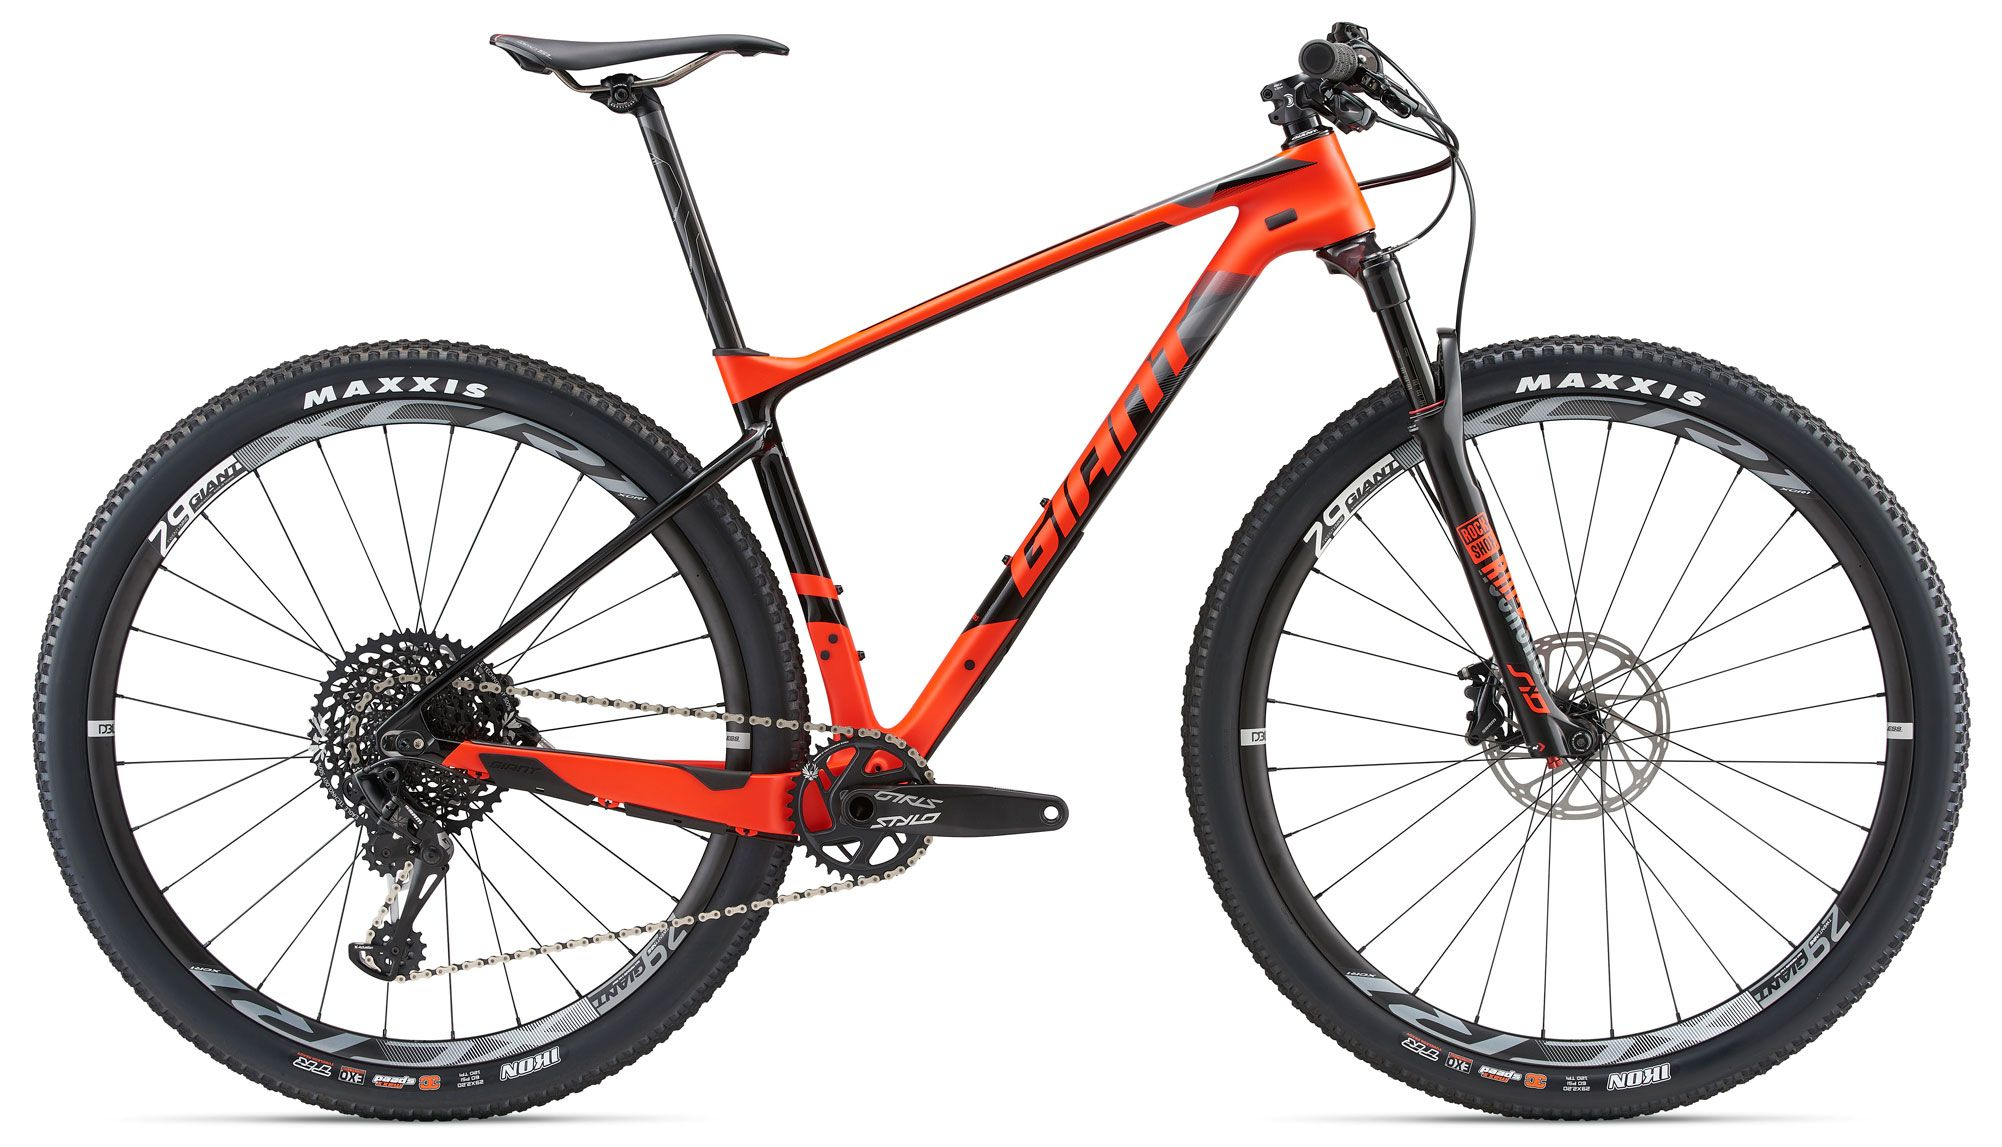 Велосипед Giant XTC Advanced 29er 1 2018 велосипед giant tcx 1 2013